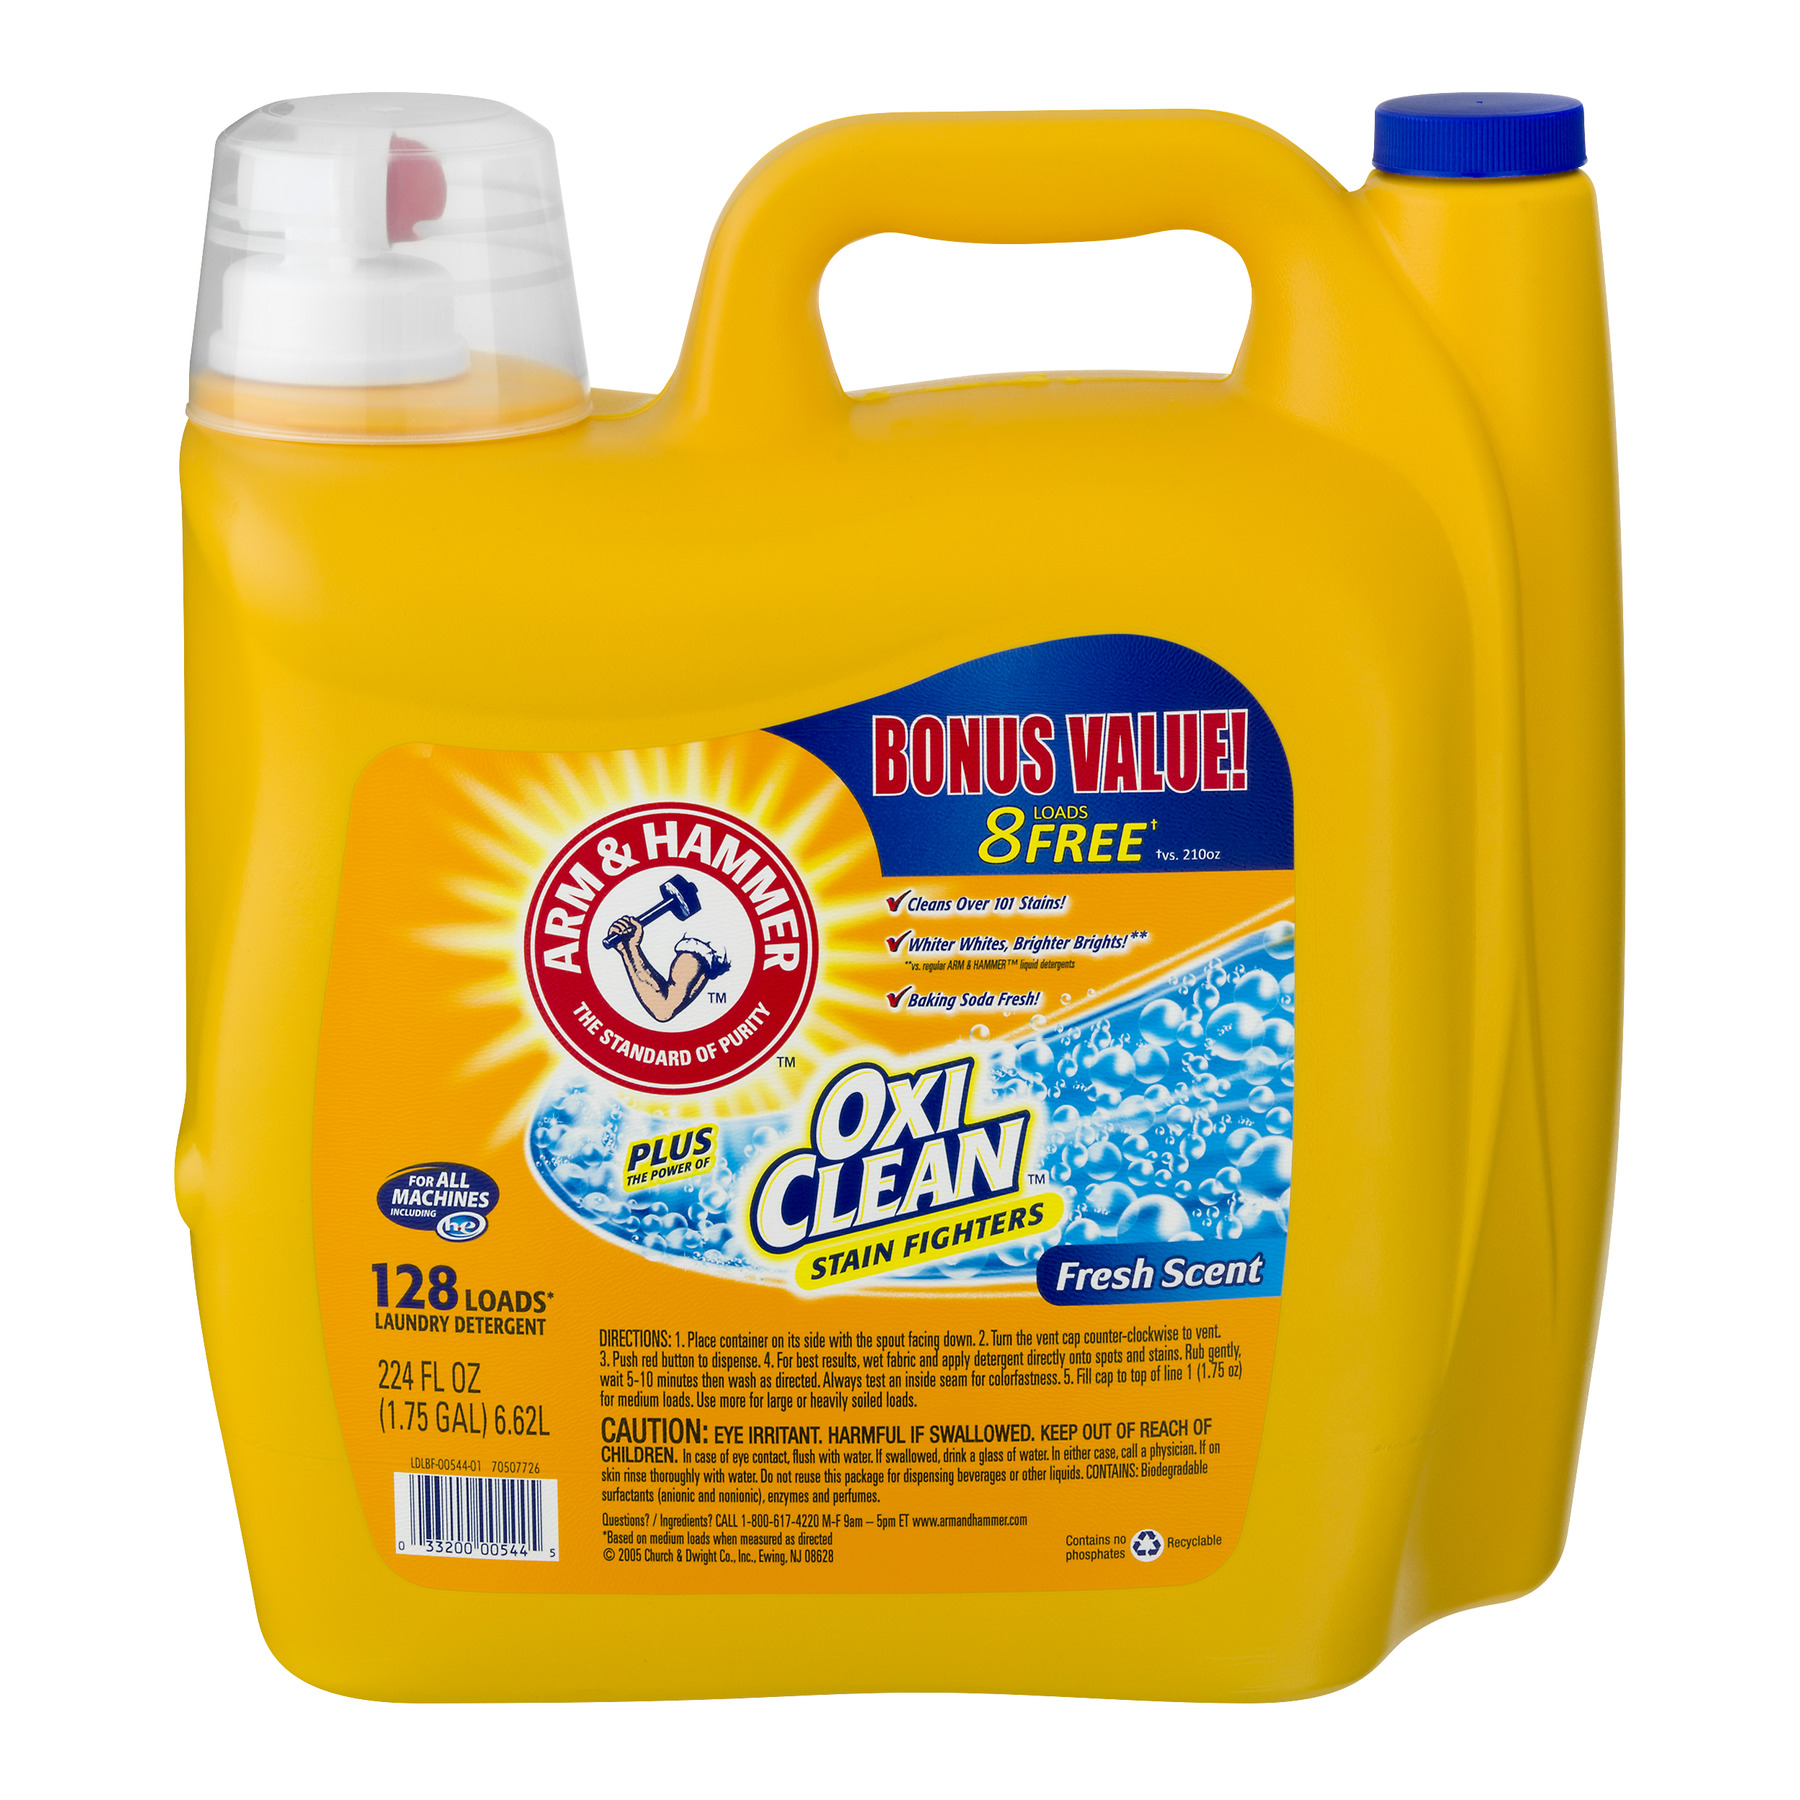 Arm & Hammer Plus OxiClean Stain Fighters Fresh Scent Laundry Detergent, 224 fl oz